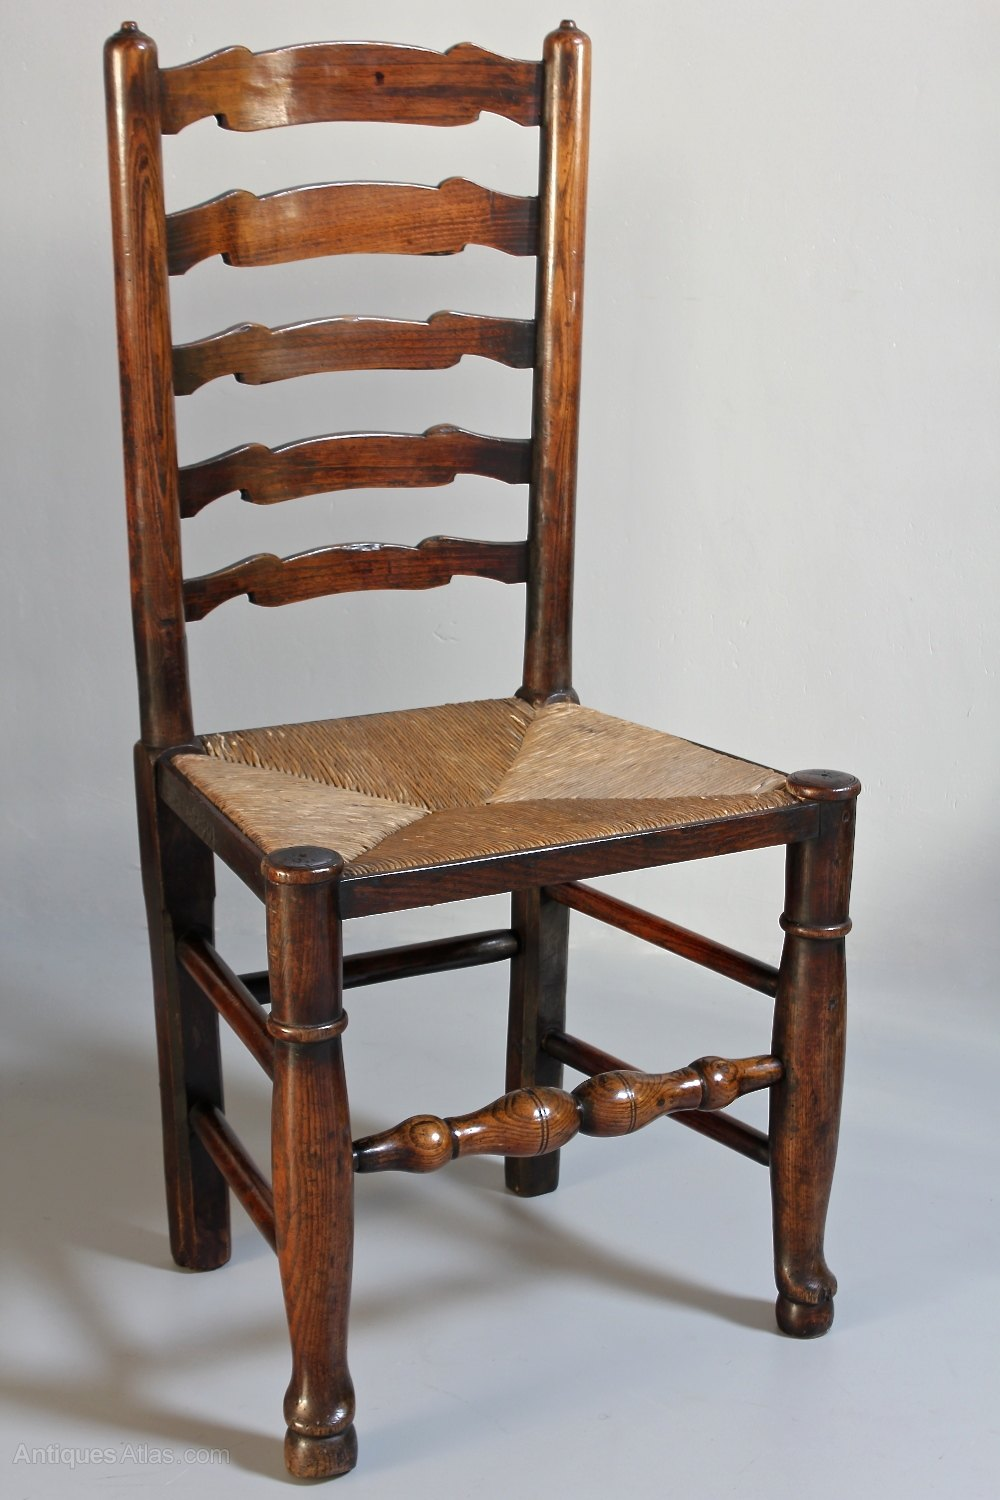 Set of 6 antique ladder back chairs t216 antiques atlas Ladder back chairs